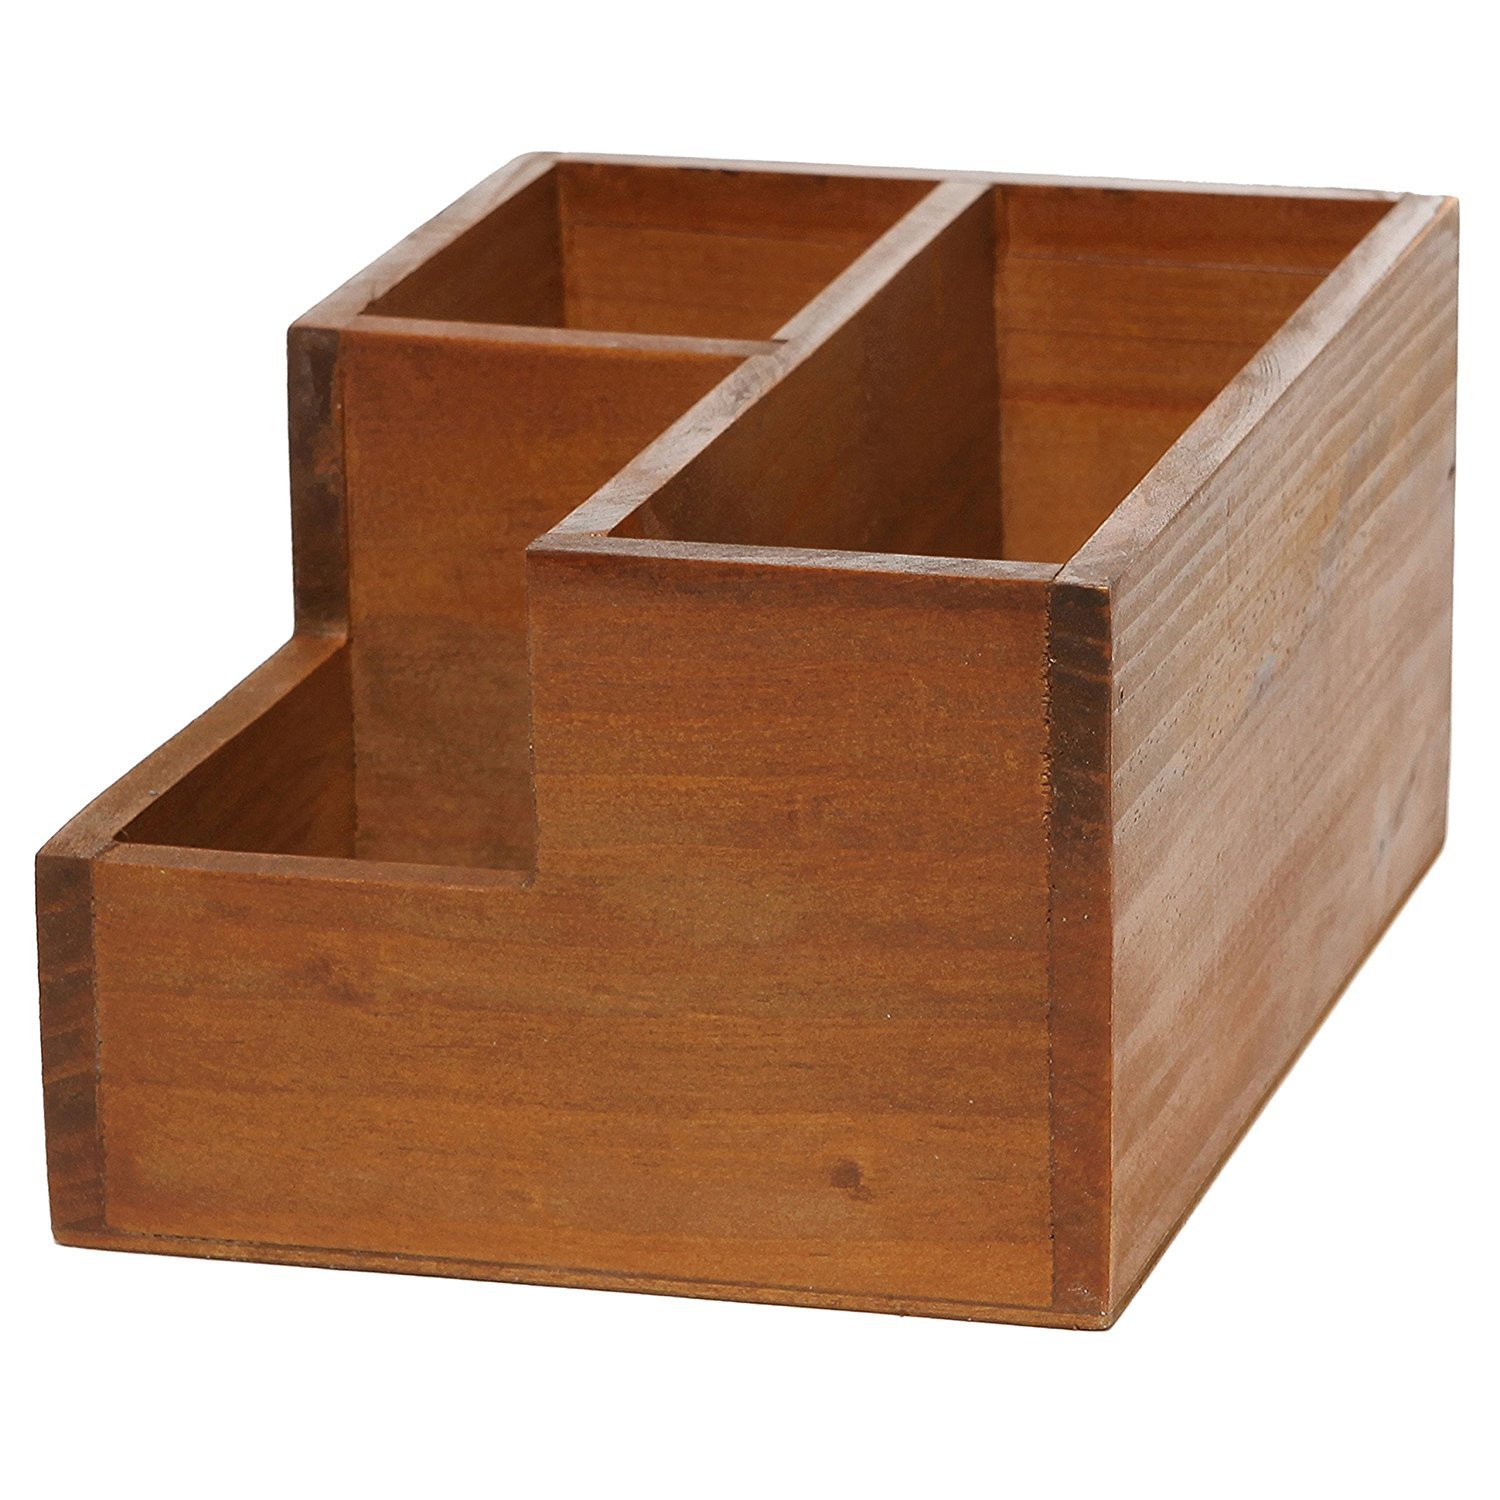 Chris-Wang Multifunctional 3-Compartment Wooden Desktop Office Supply Caddy/Pencil Holder/Desk Mail Organizer/Succulent Plants Planter(Classic Brown) by Chris.W (Image #1)